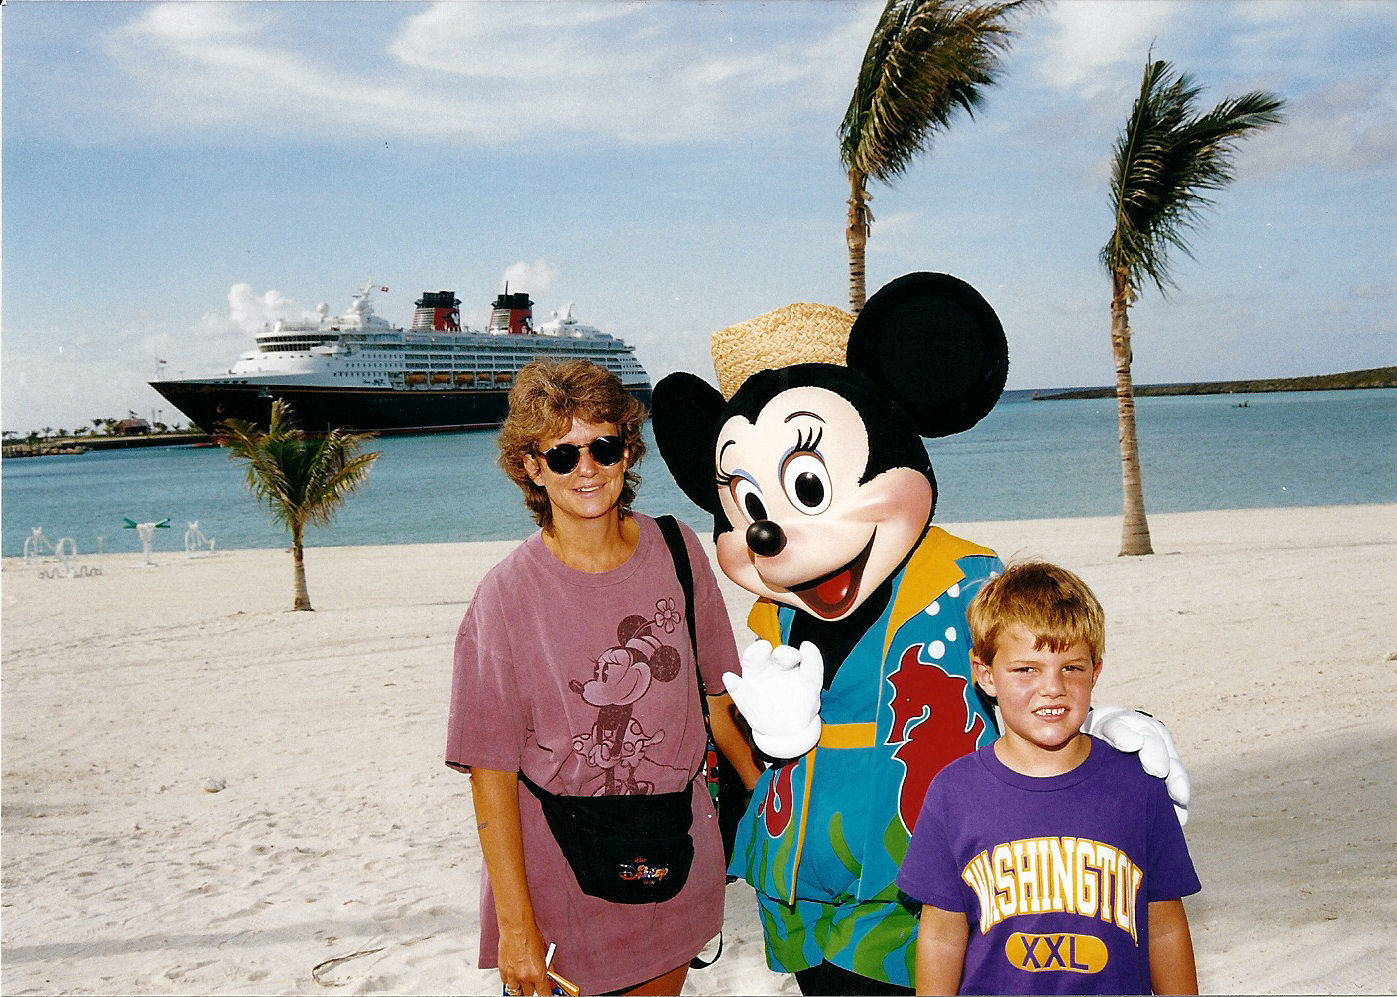 Me, my mom, and Minnie on Castaway Cay.